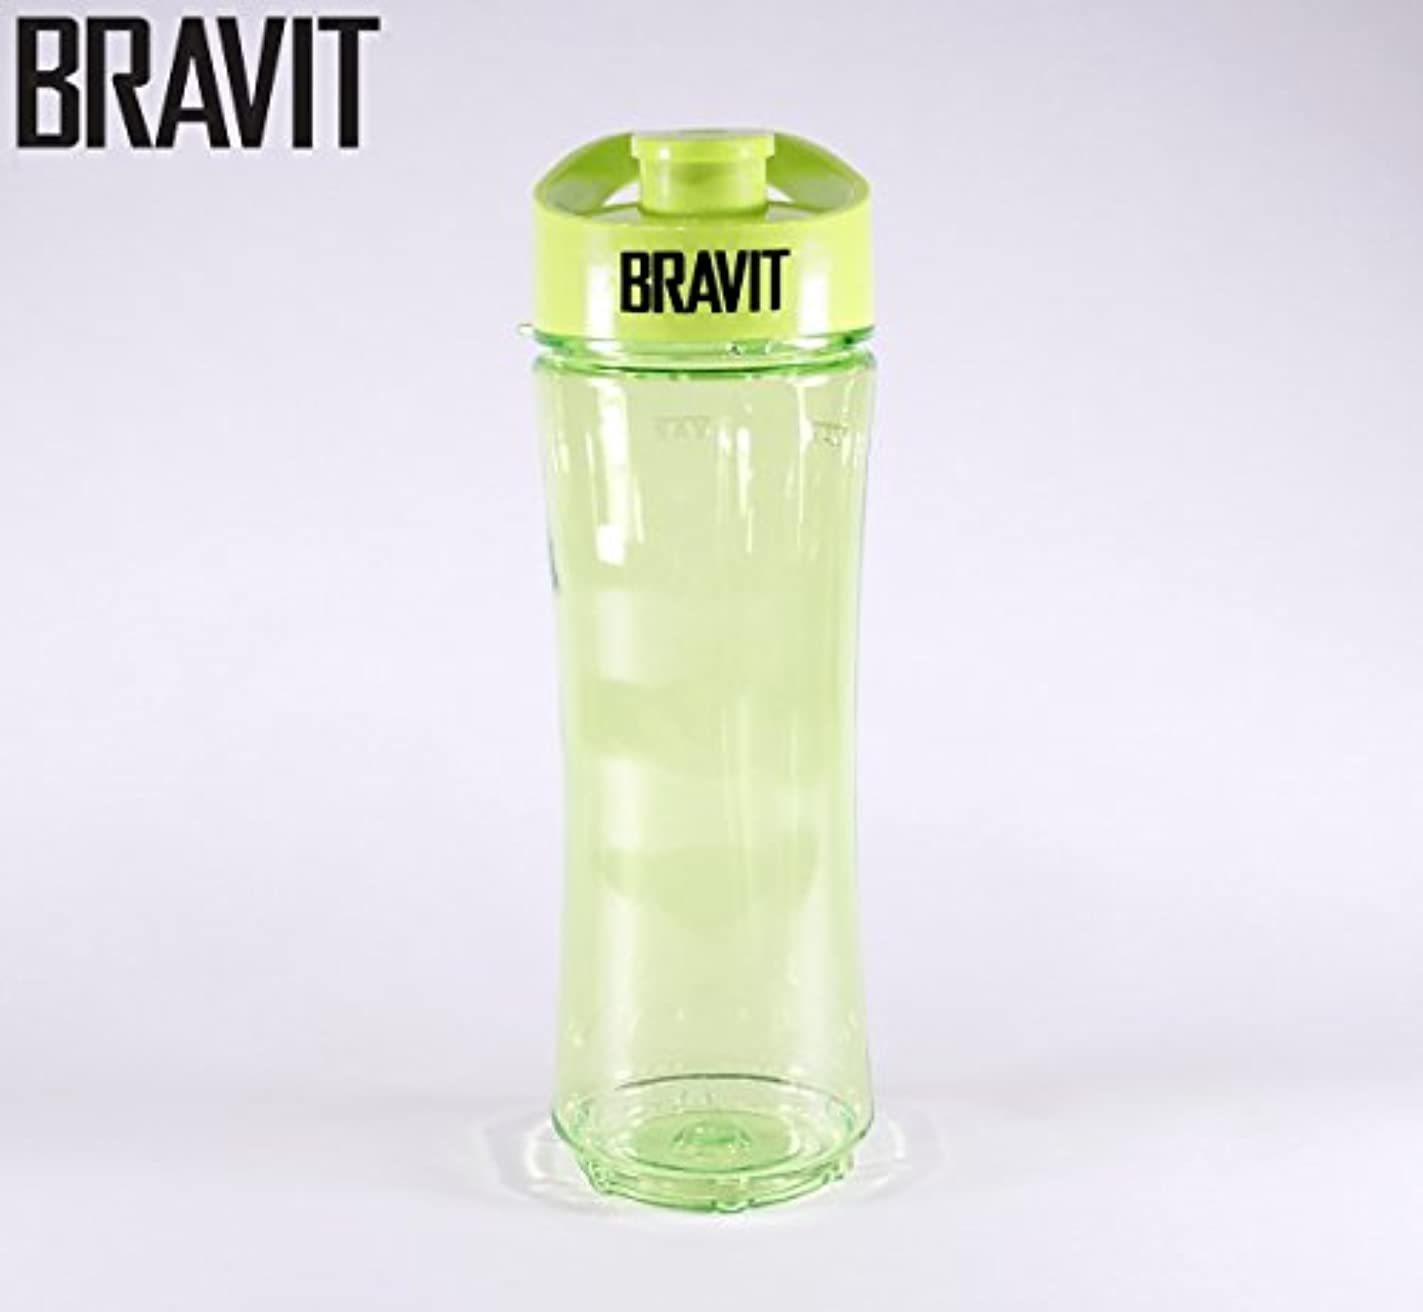 方向ハイジャック立方体BRAVIT Personal Sports Bottle, Smoothie, Shake Maker with Travel Lead for BRAVIT Personal Sports Blender by BRAVIT